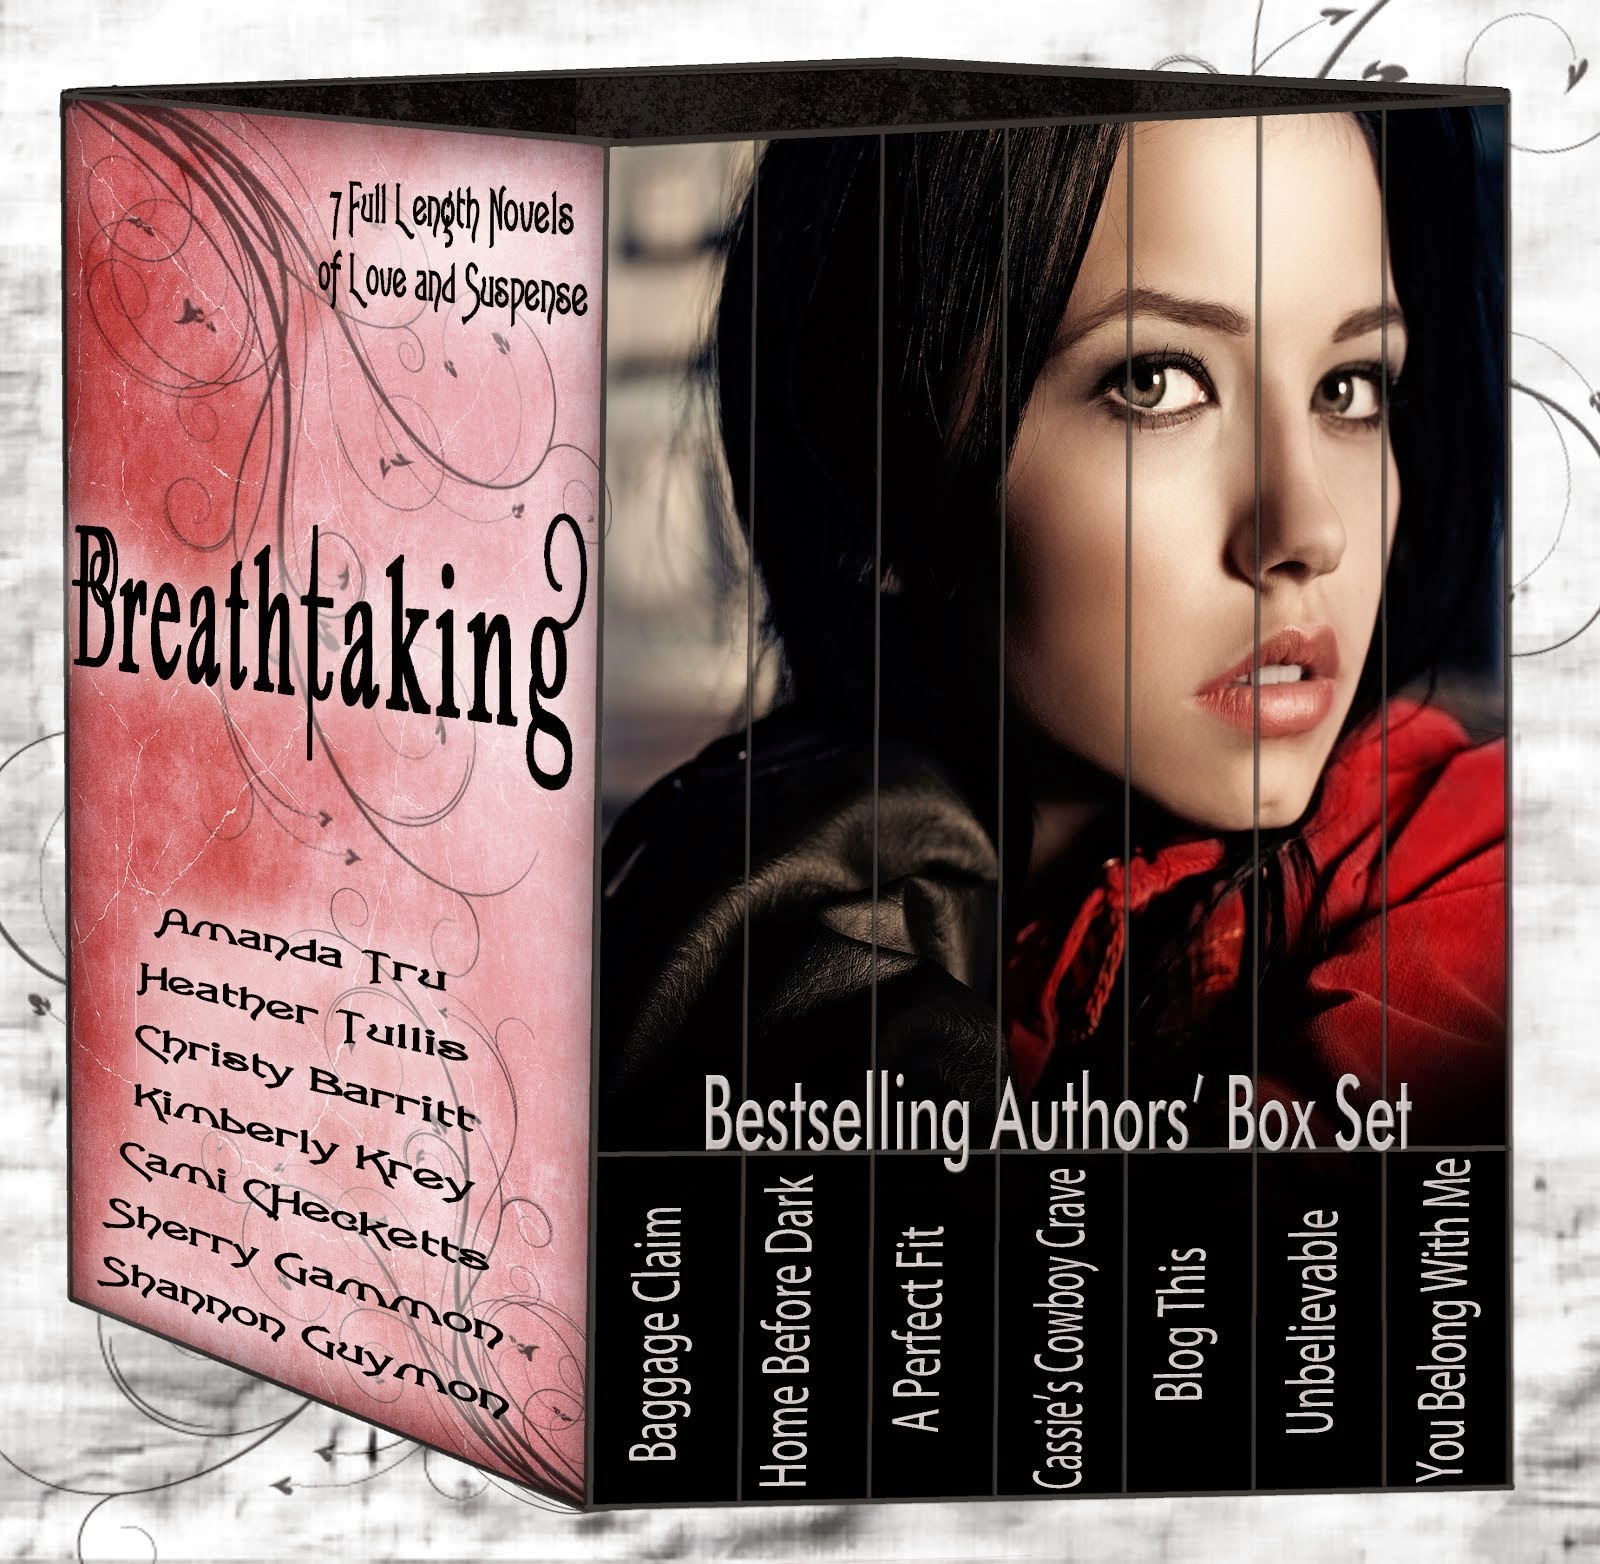 Breathtaking Boxed Set